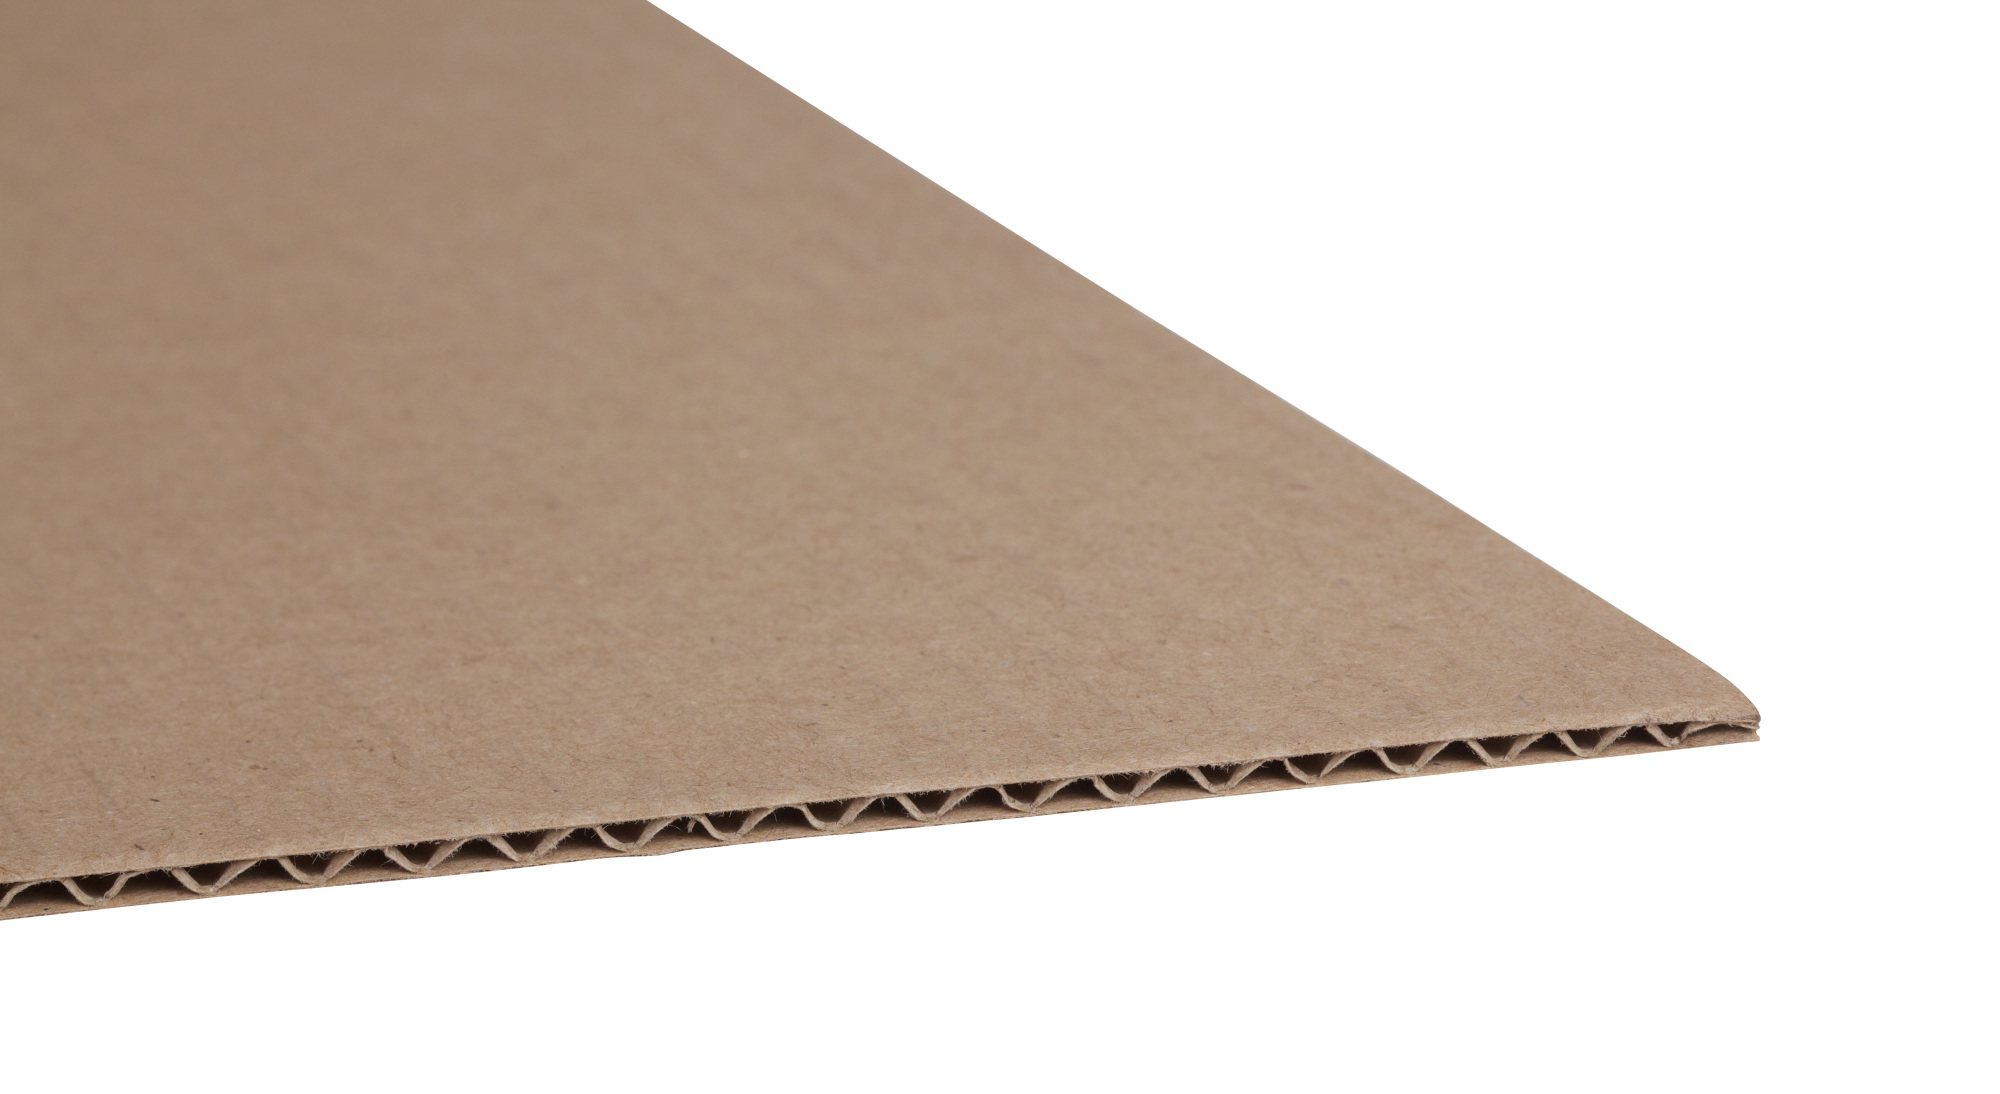 1150 x 950mm Single Wall Sheet